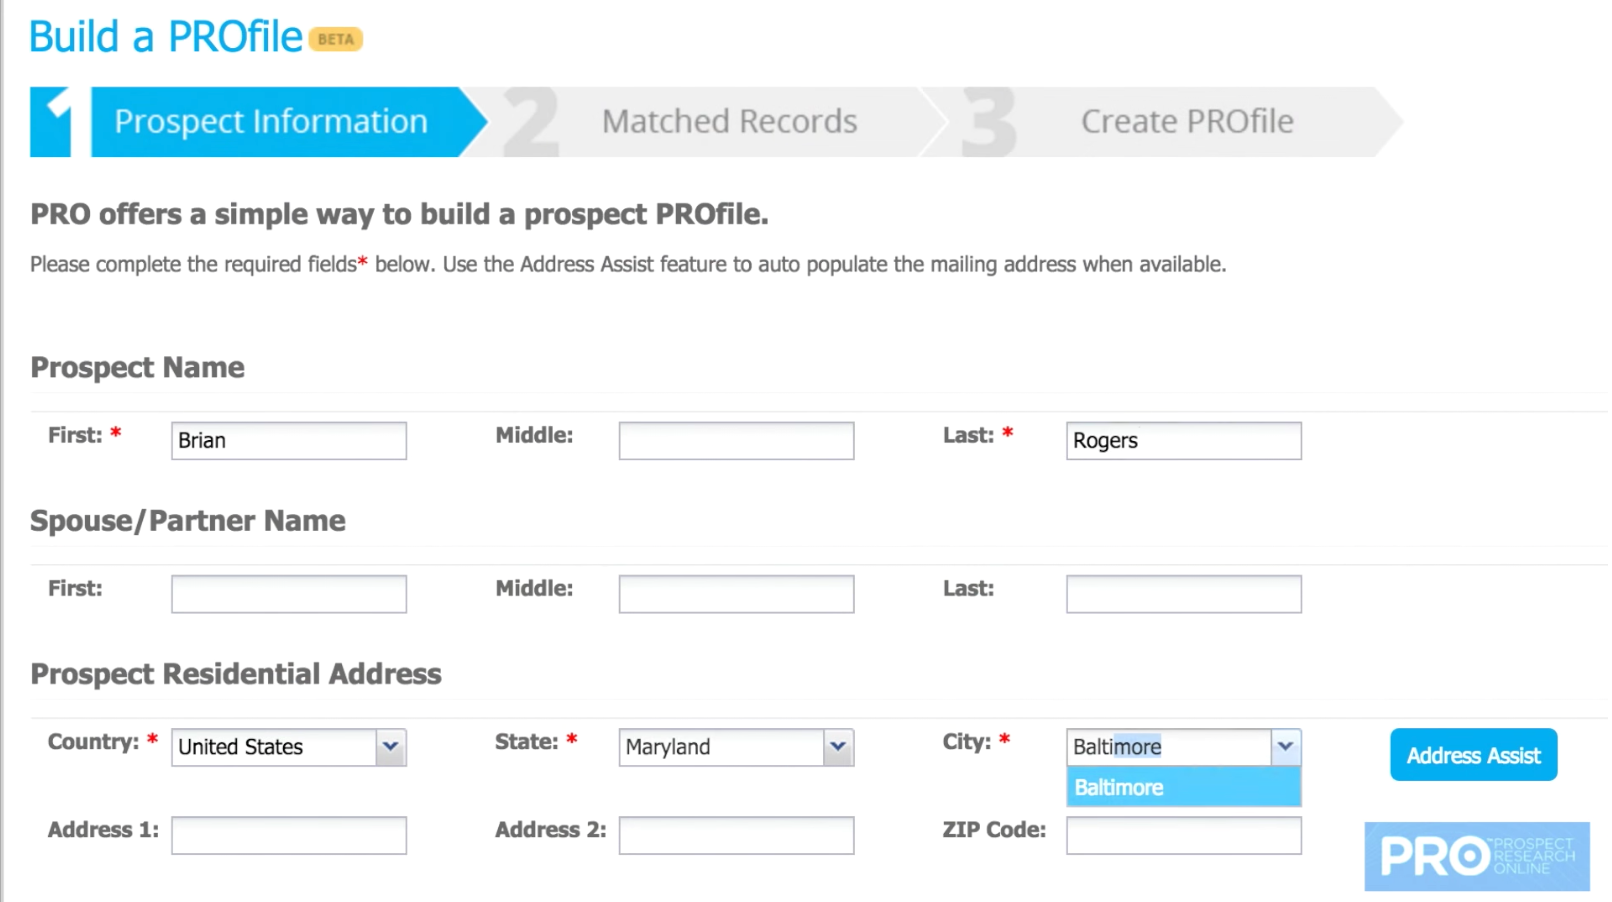 To create a PROfile, users only need to enter a name and city location